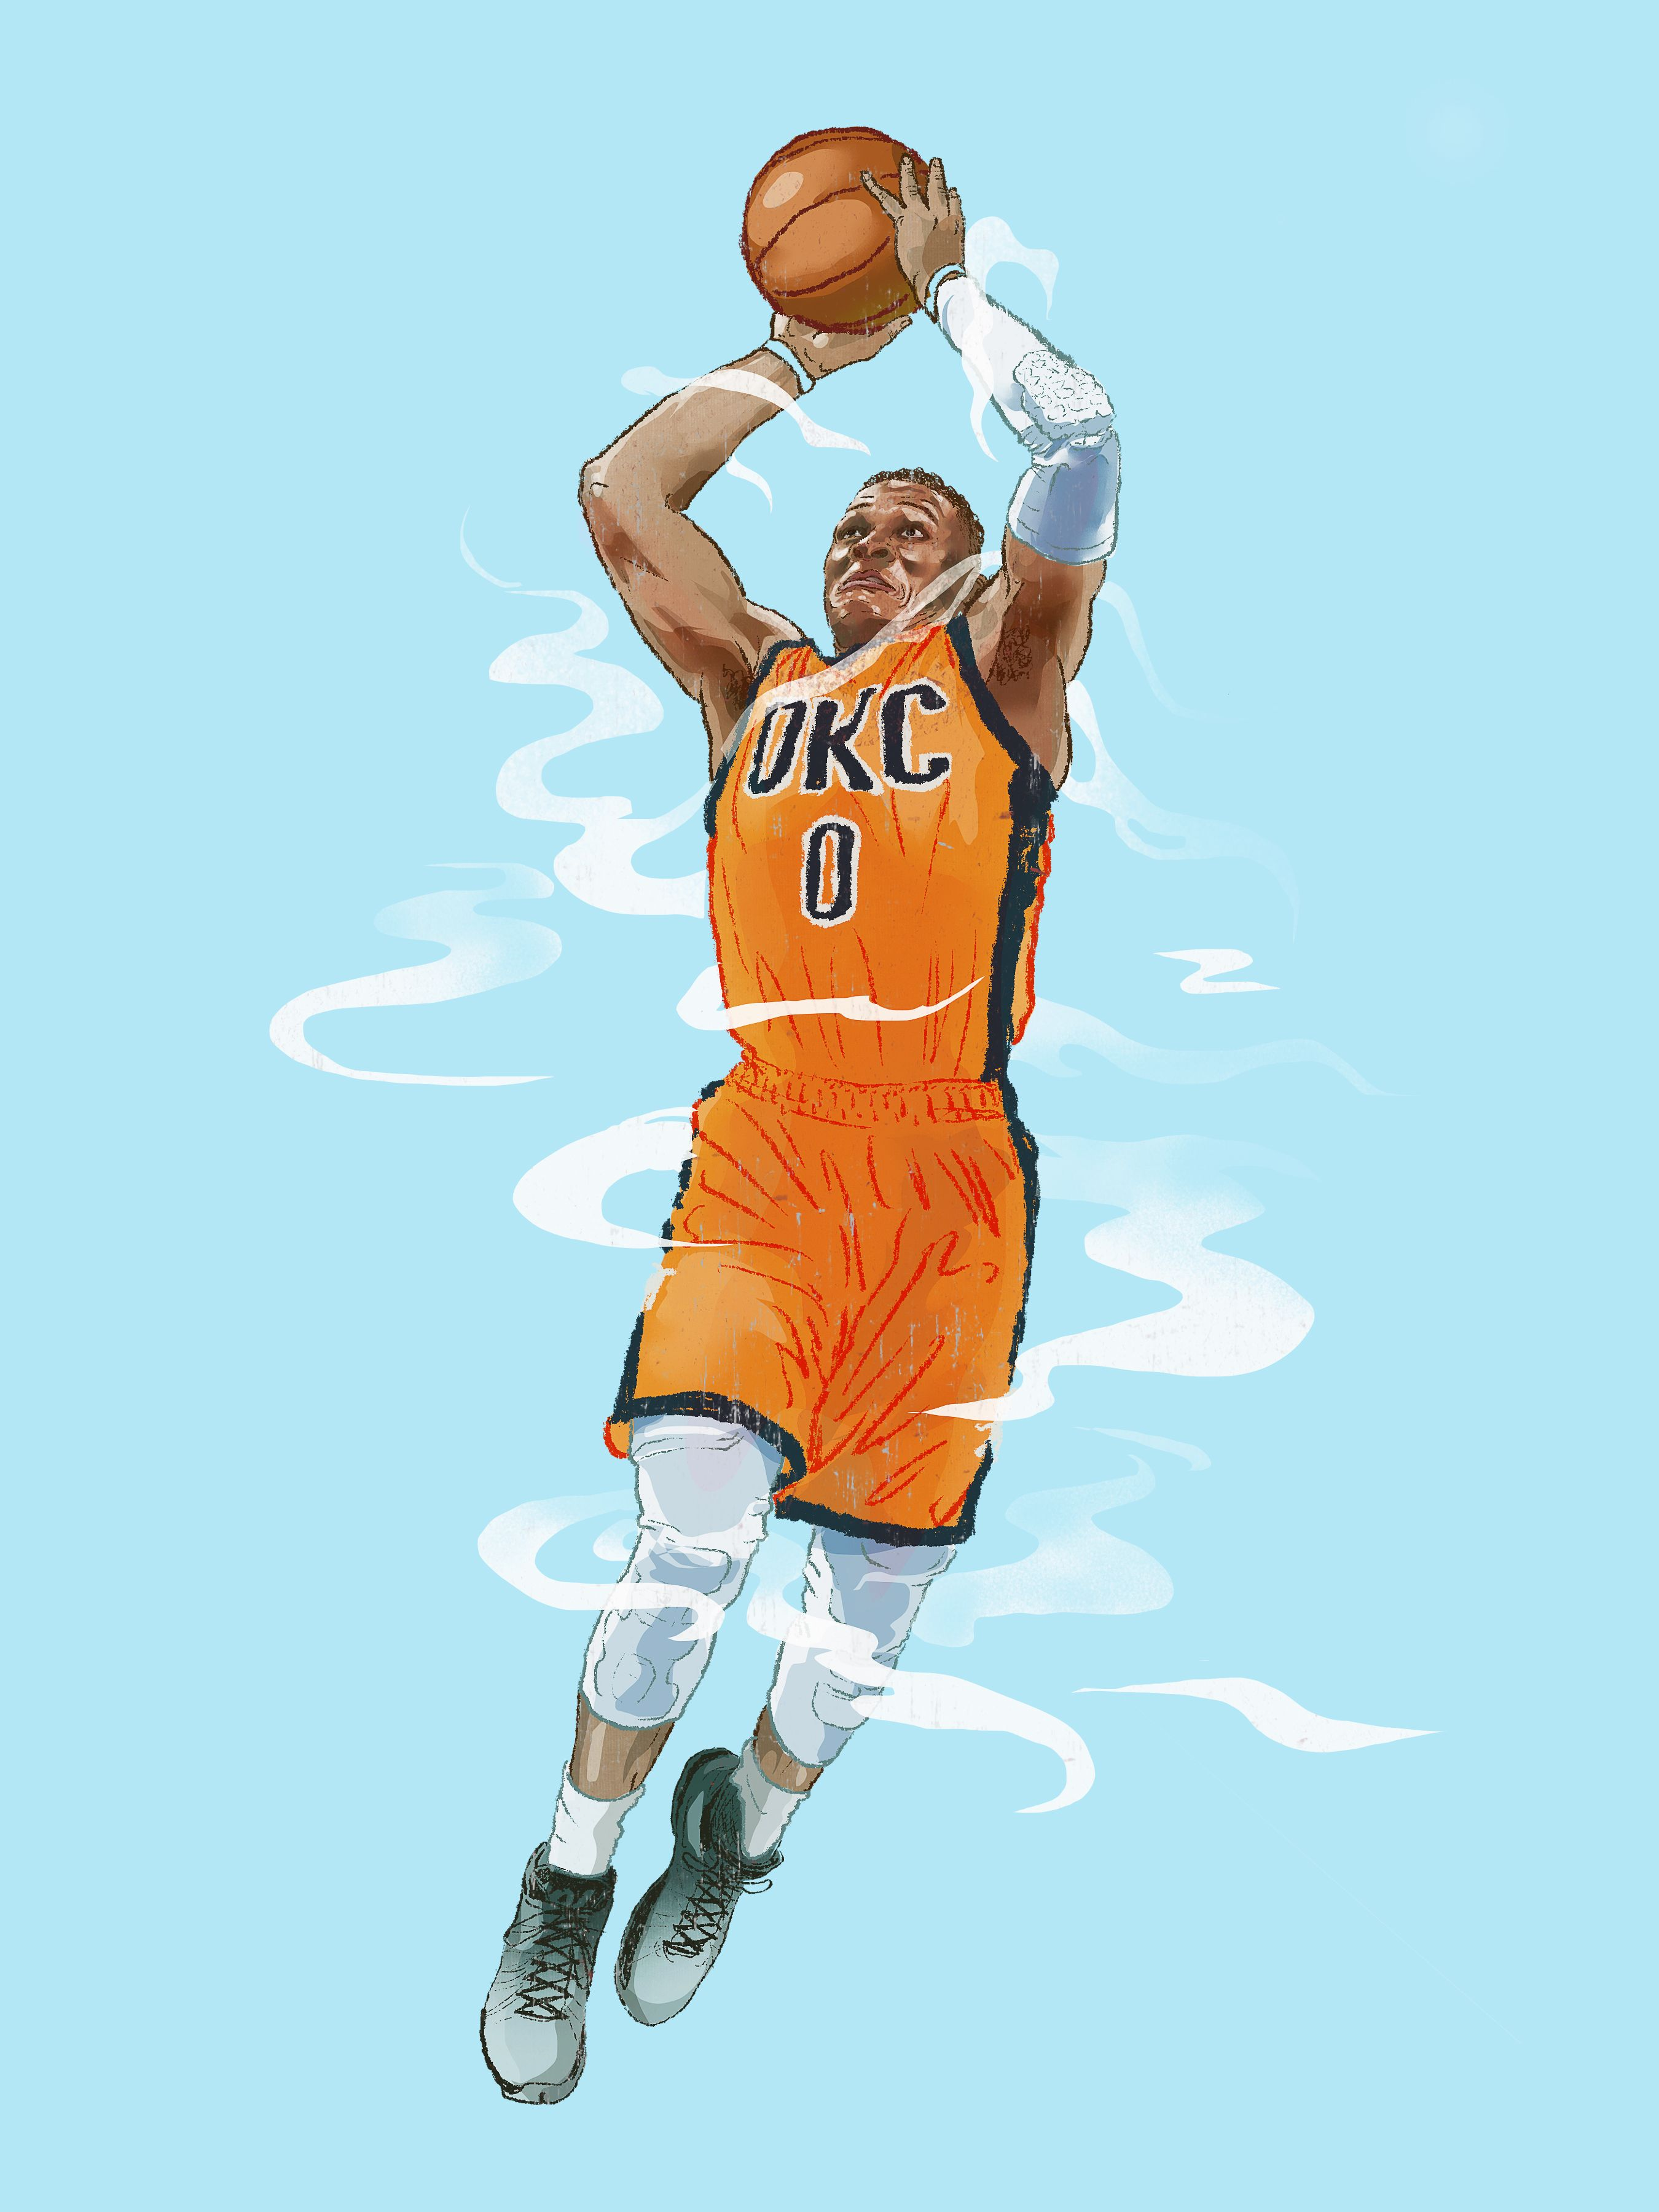 YuMing Huang NBA Pinterest NBA, Russell westbrook